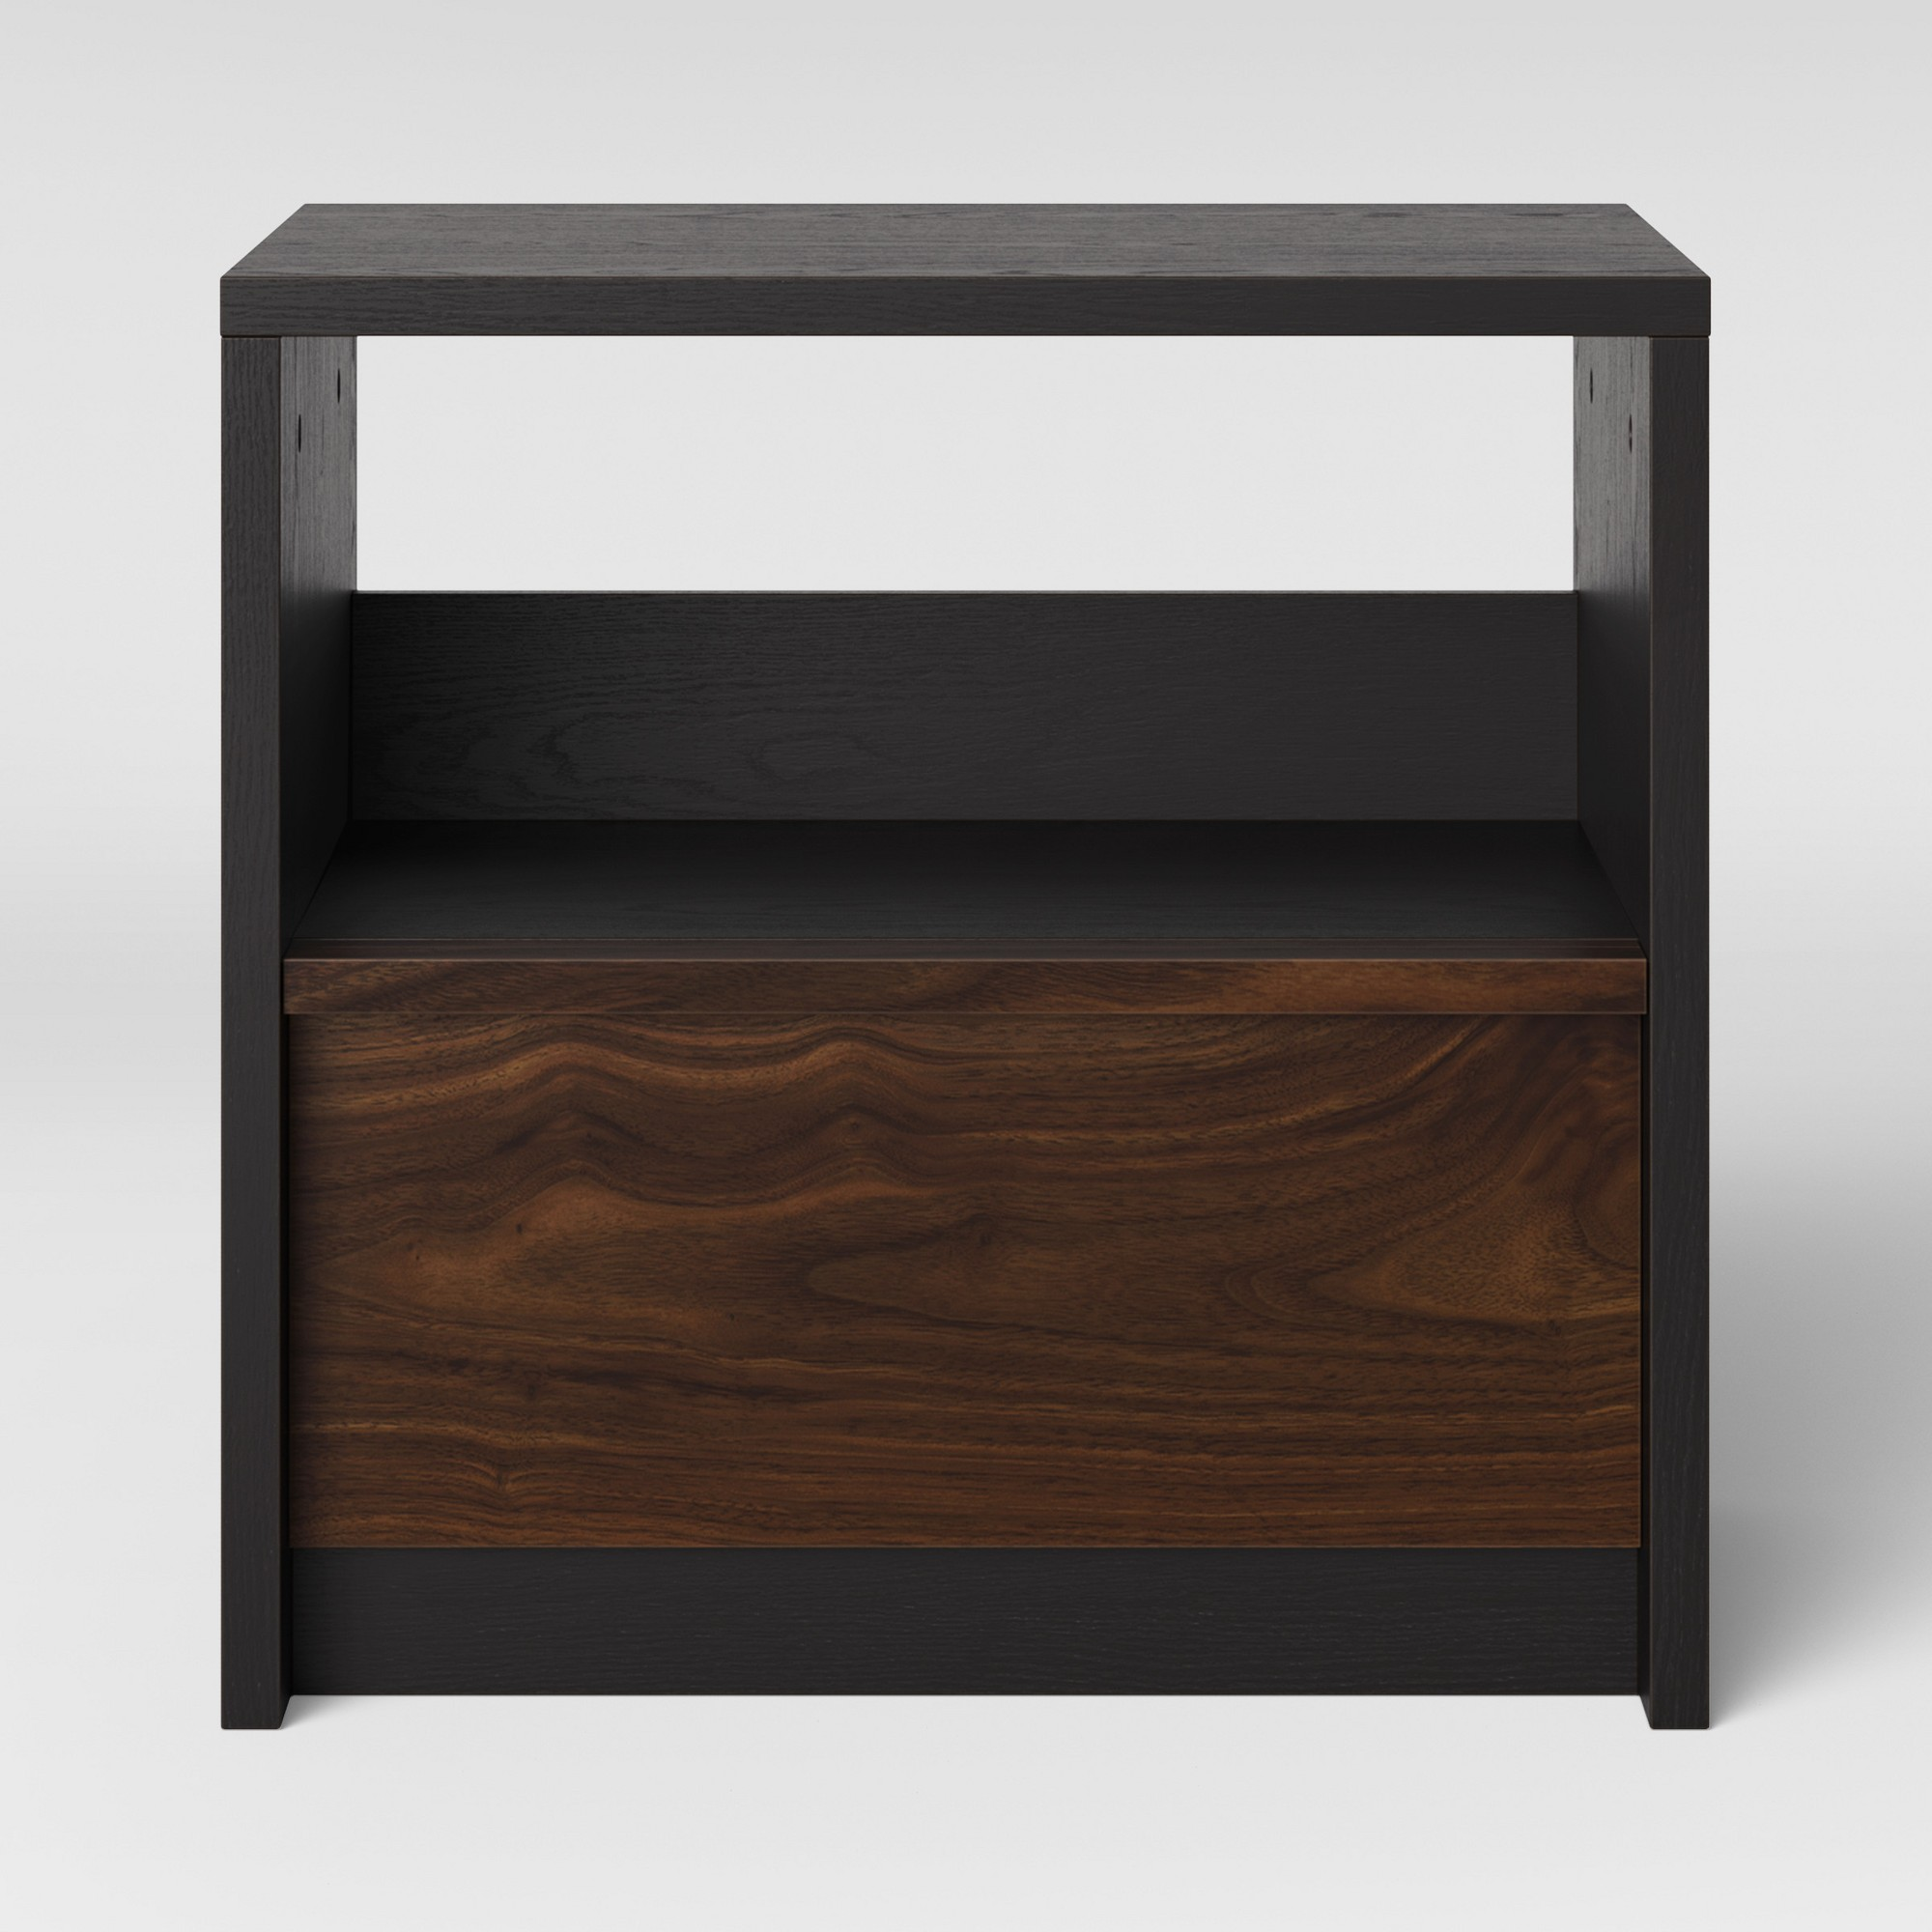 ellwood two tone nightstand grand walnut project products one drawer accent table french coffee dark wood tablecloth size for cocktail and wine rack long pub colored glass small